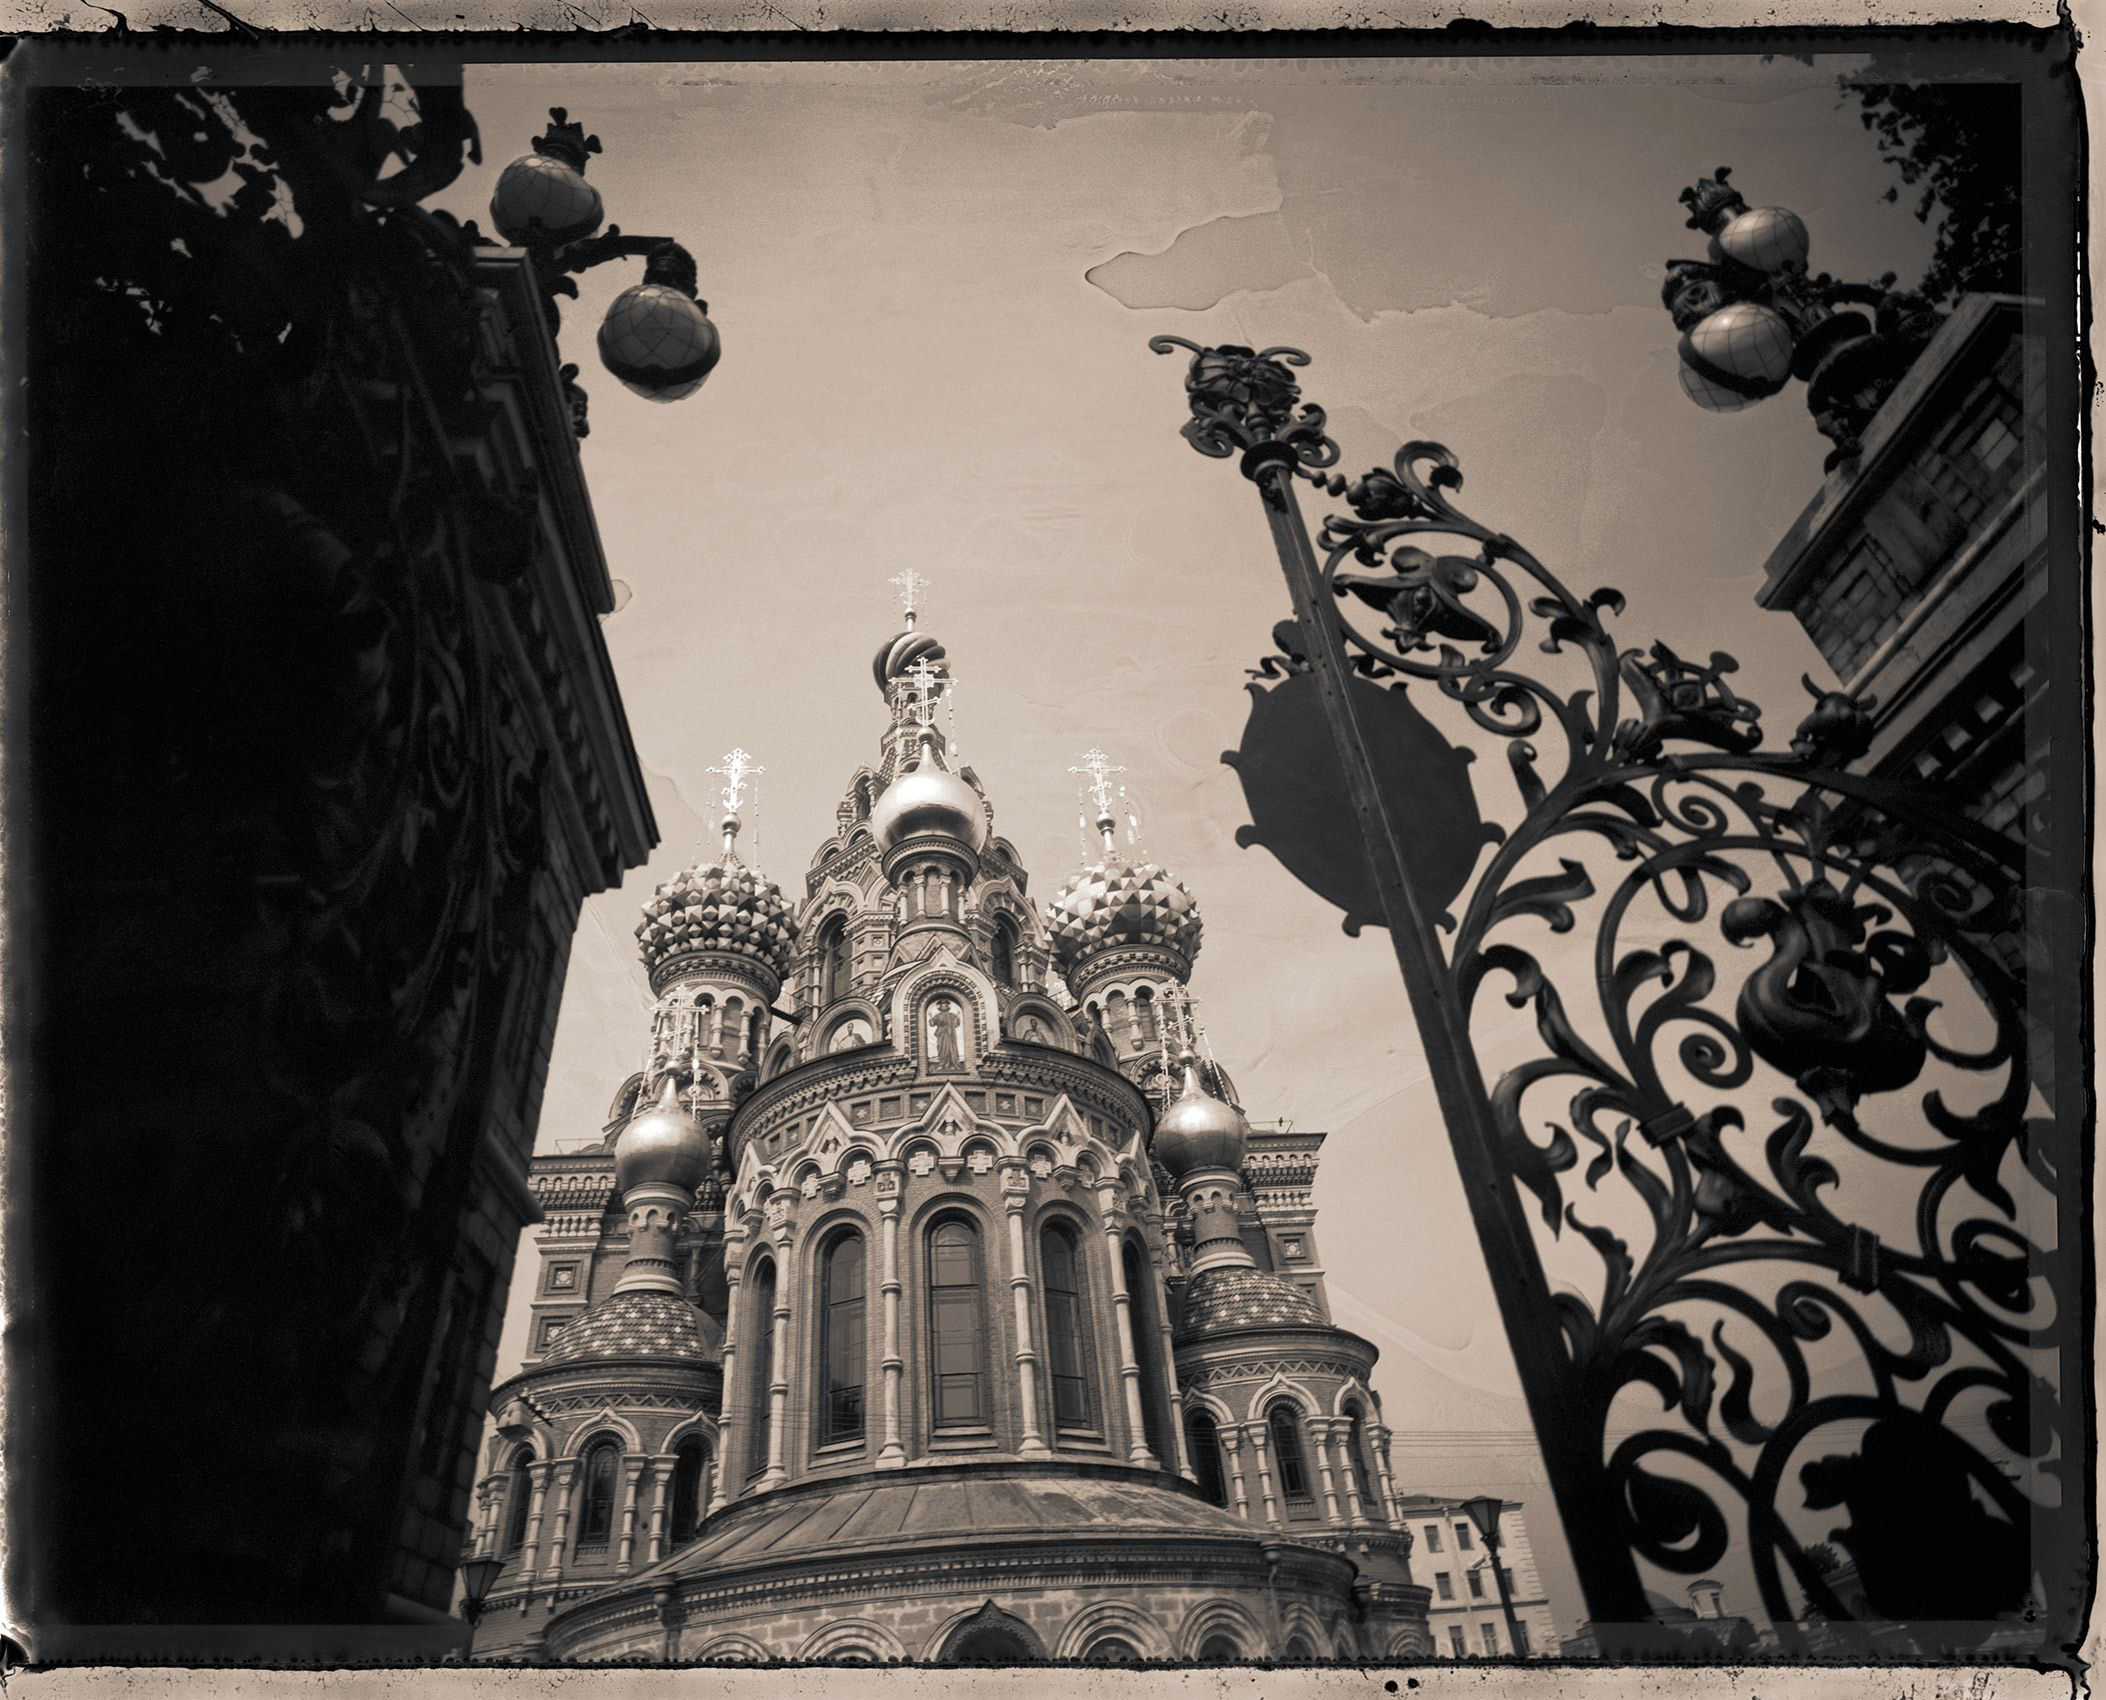 Church of the Saviour on the Spilled Blood, St. Petersburg, Russia